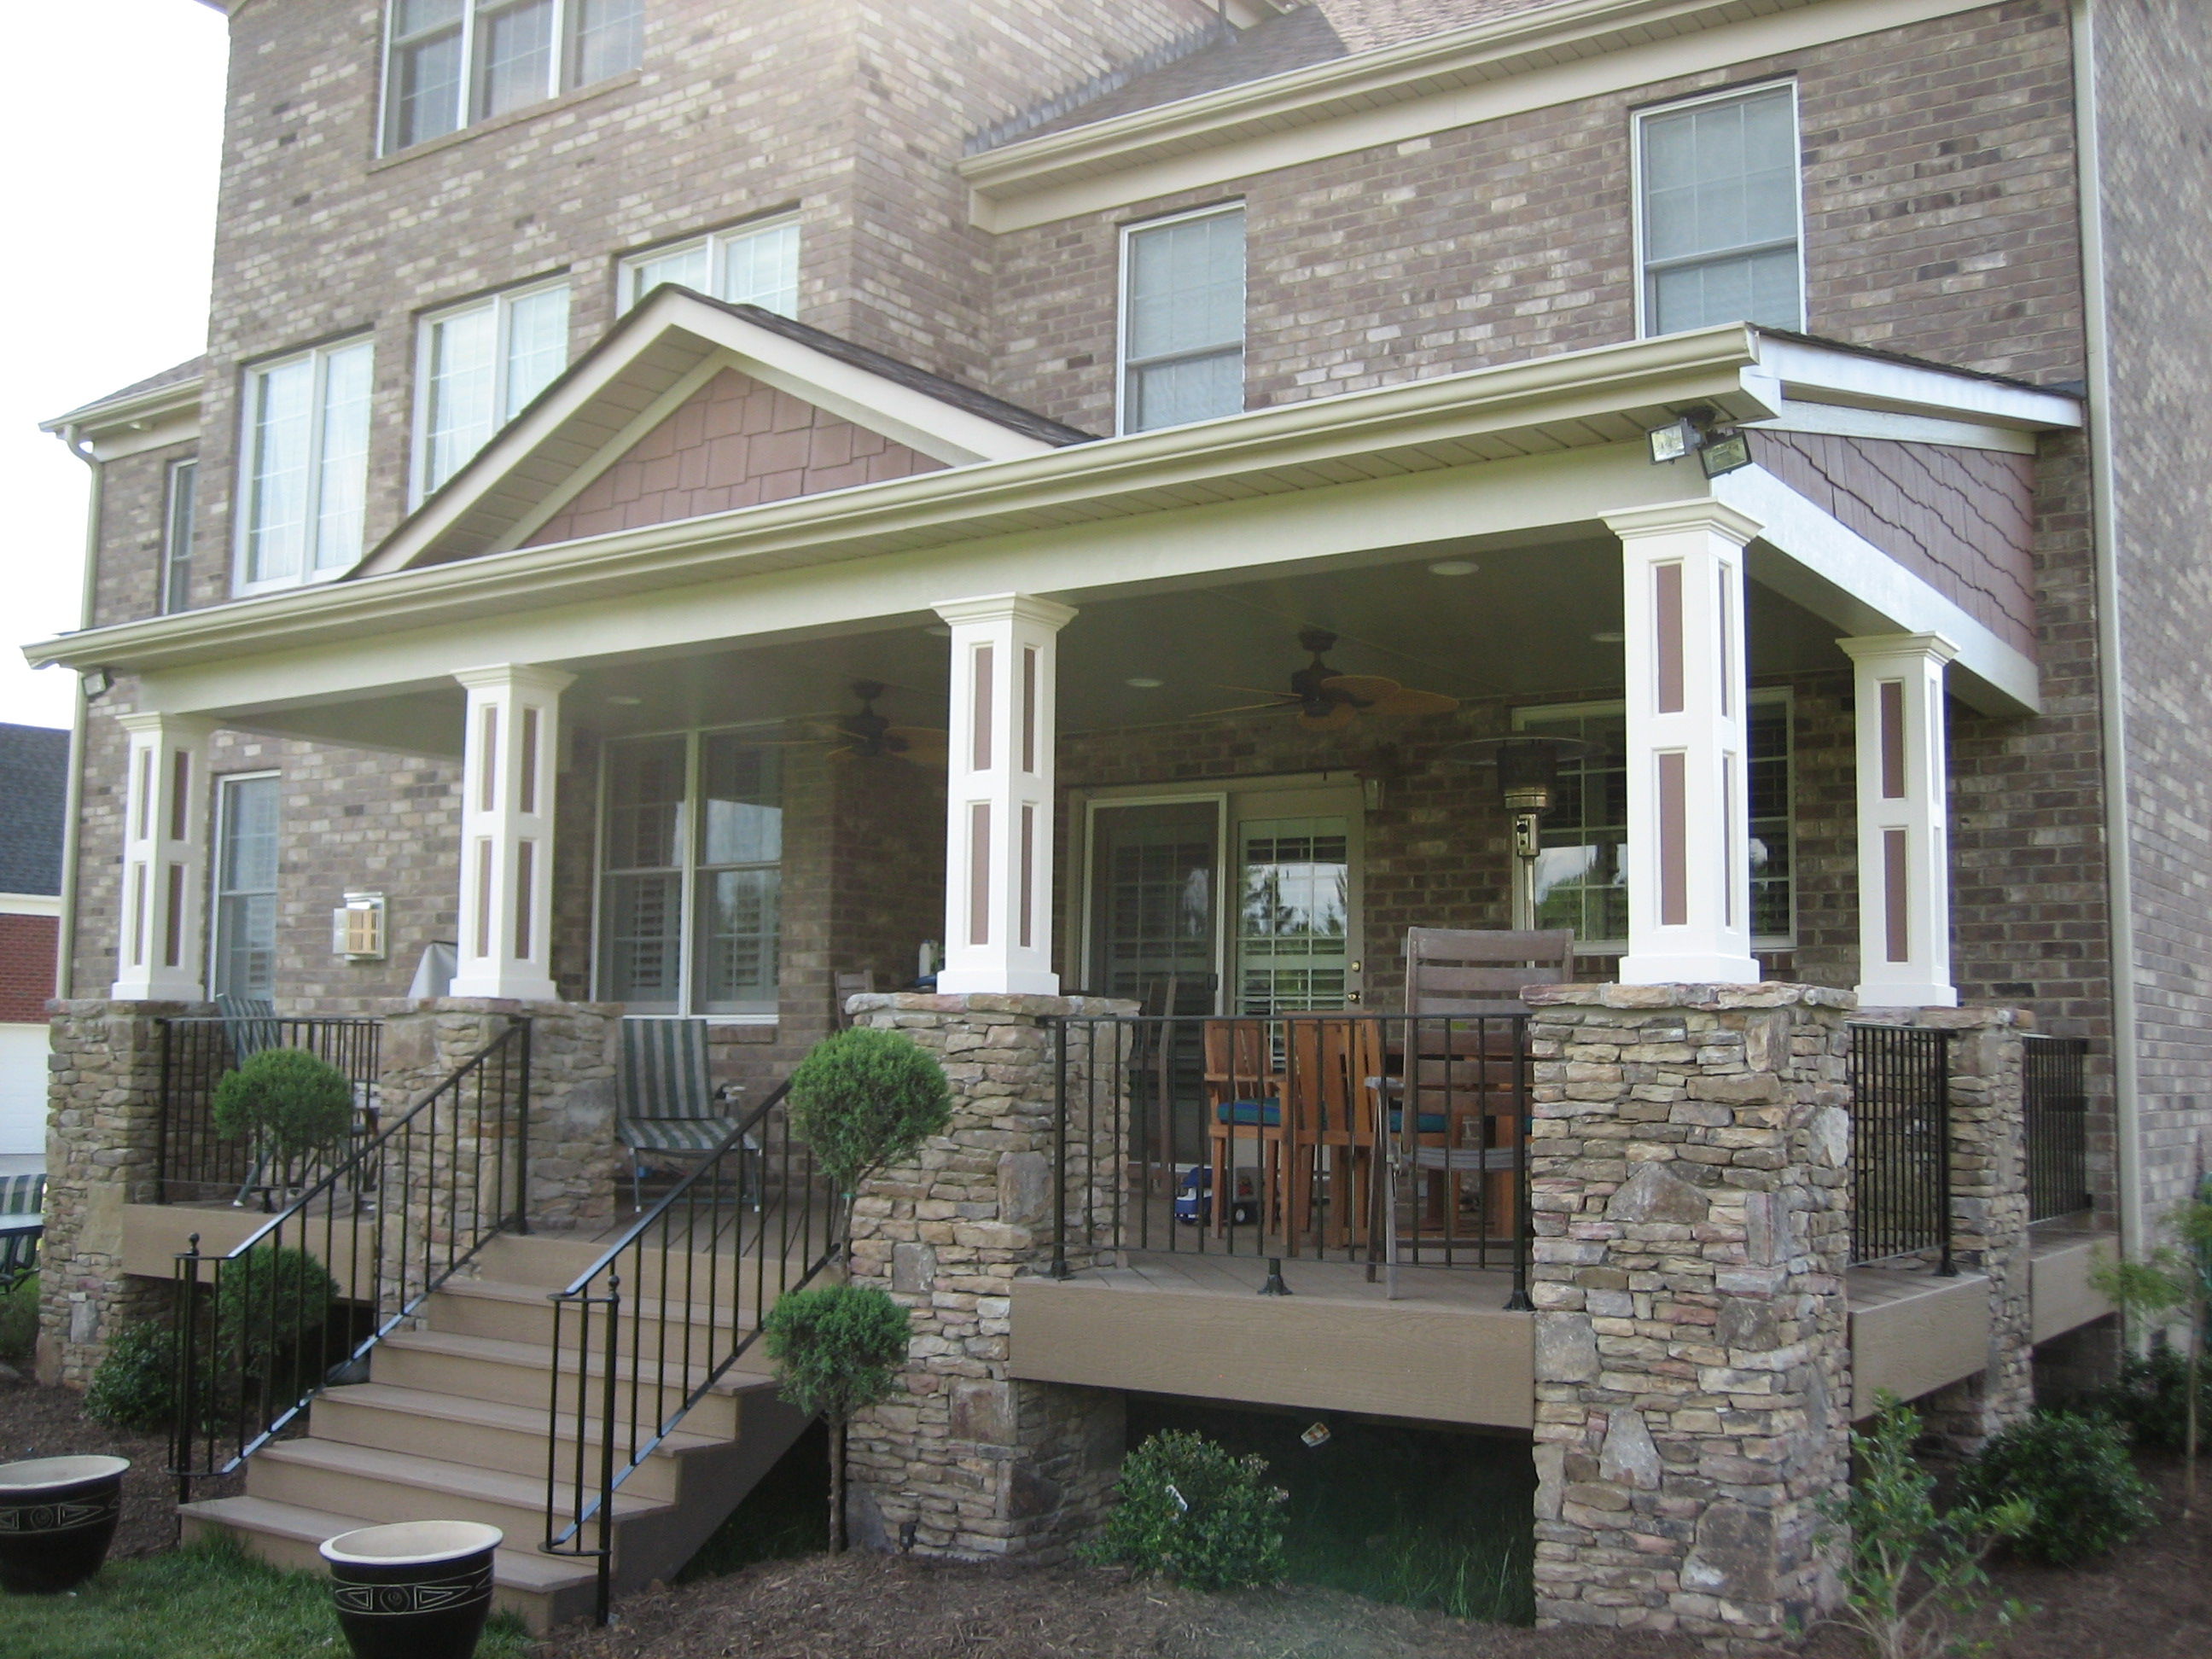 Exterior additions llc indian trail nc 28079 angies list for Stone porches photos